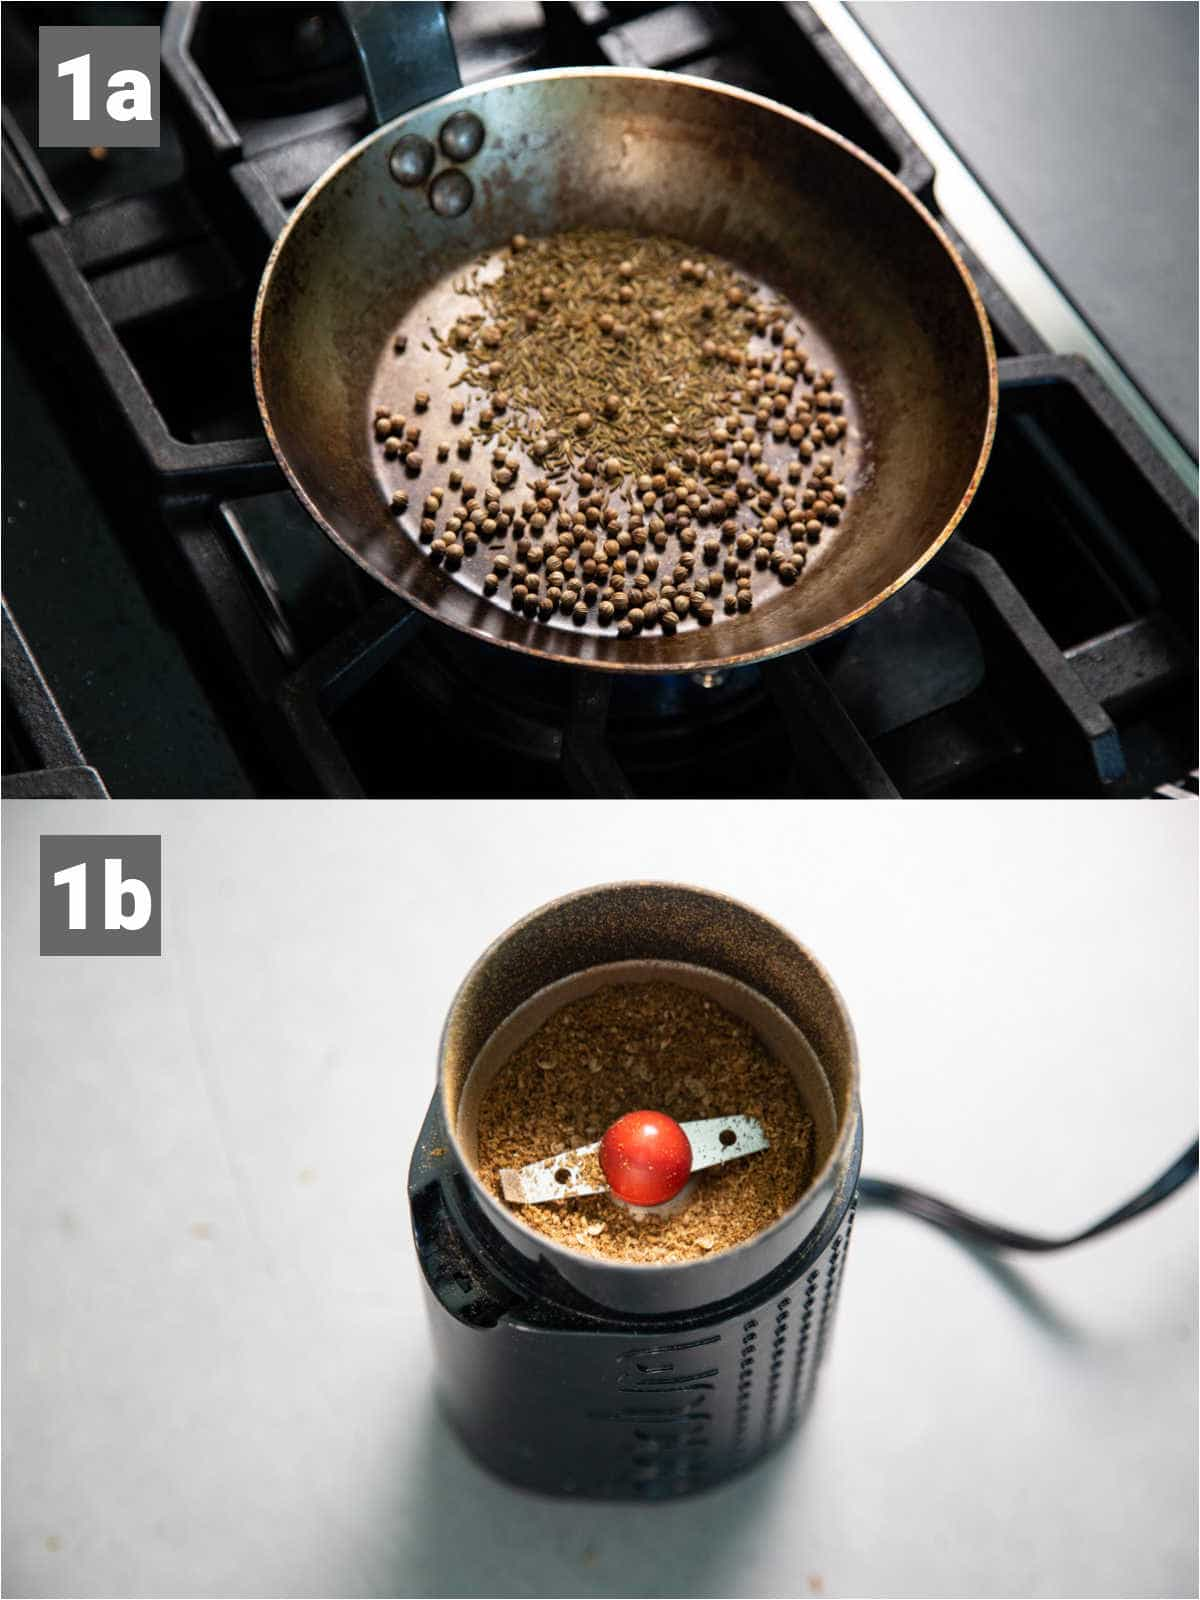 toasting the spices in a skillet and grinding them in a coffee grinder